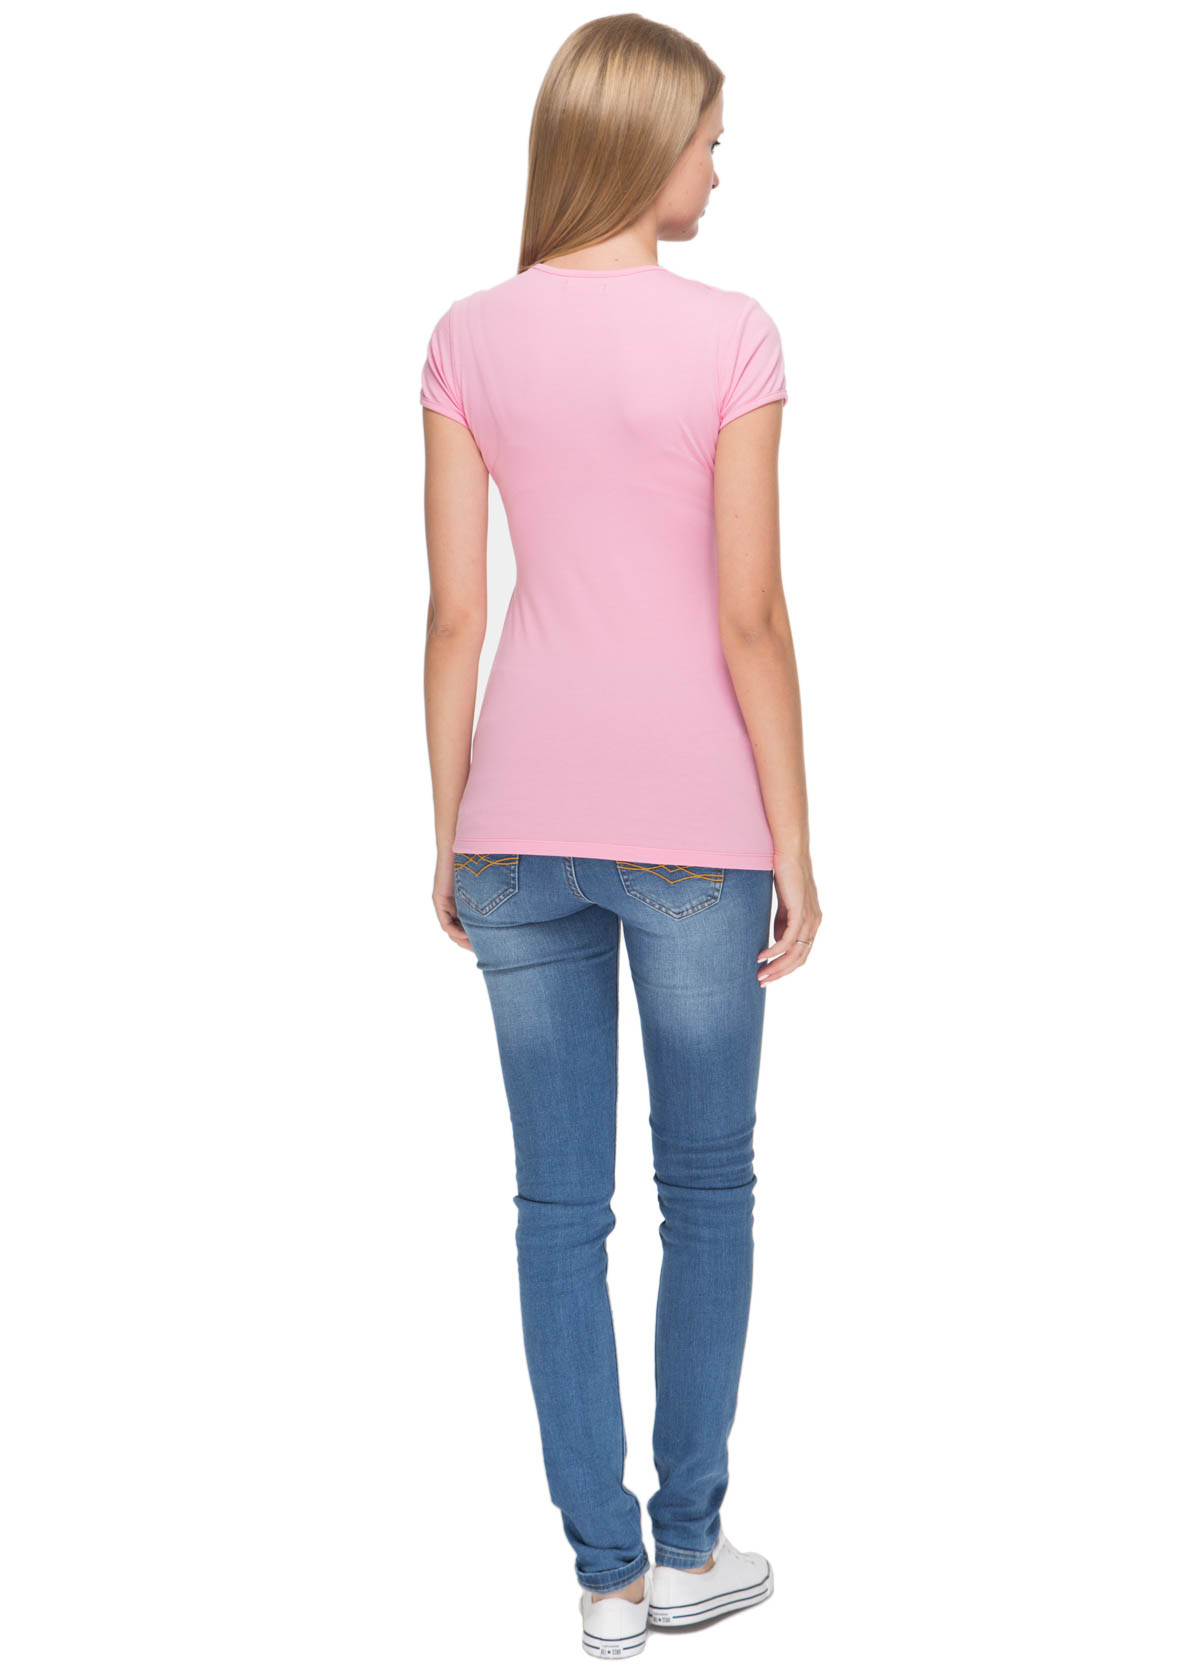 Уралмама. Nursing T-shirt FH03; colour: soft pink